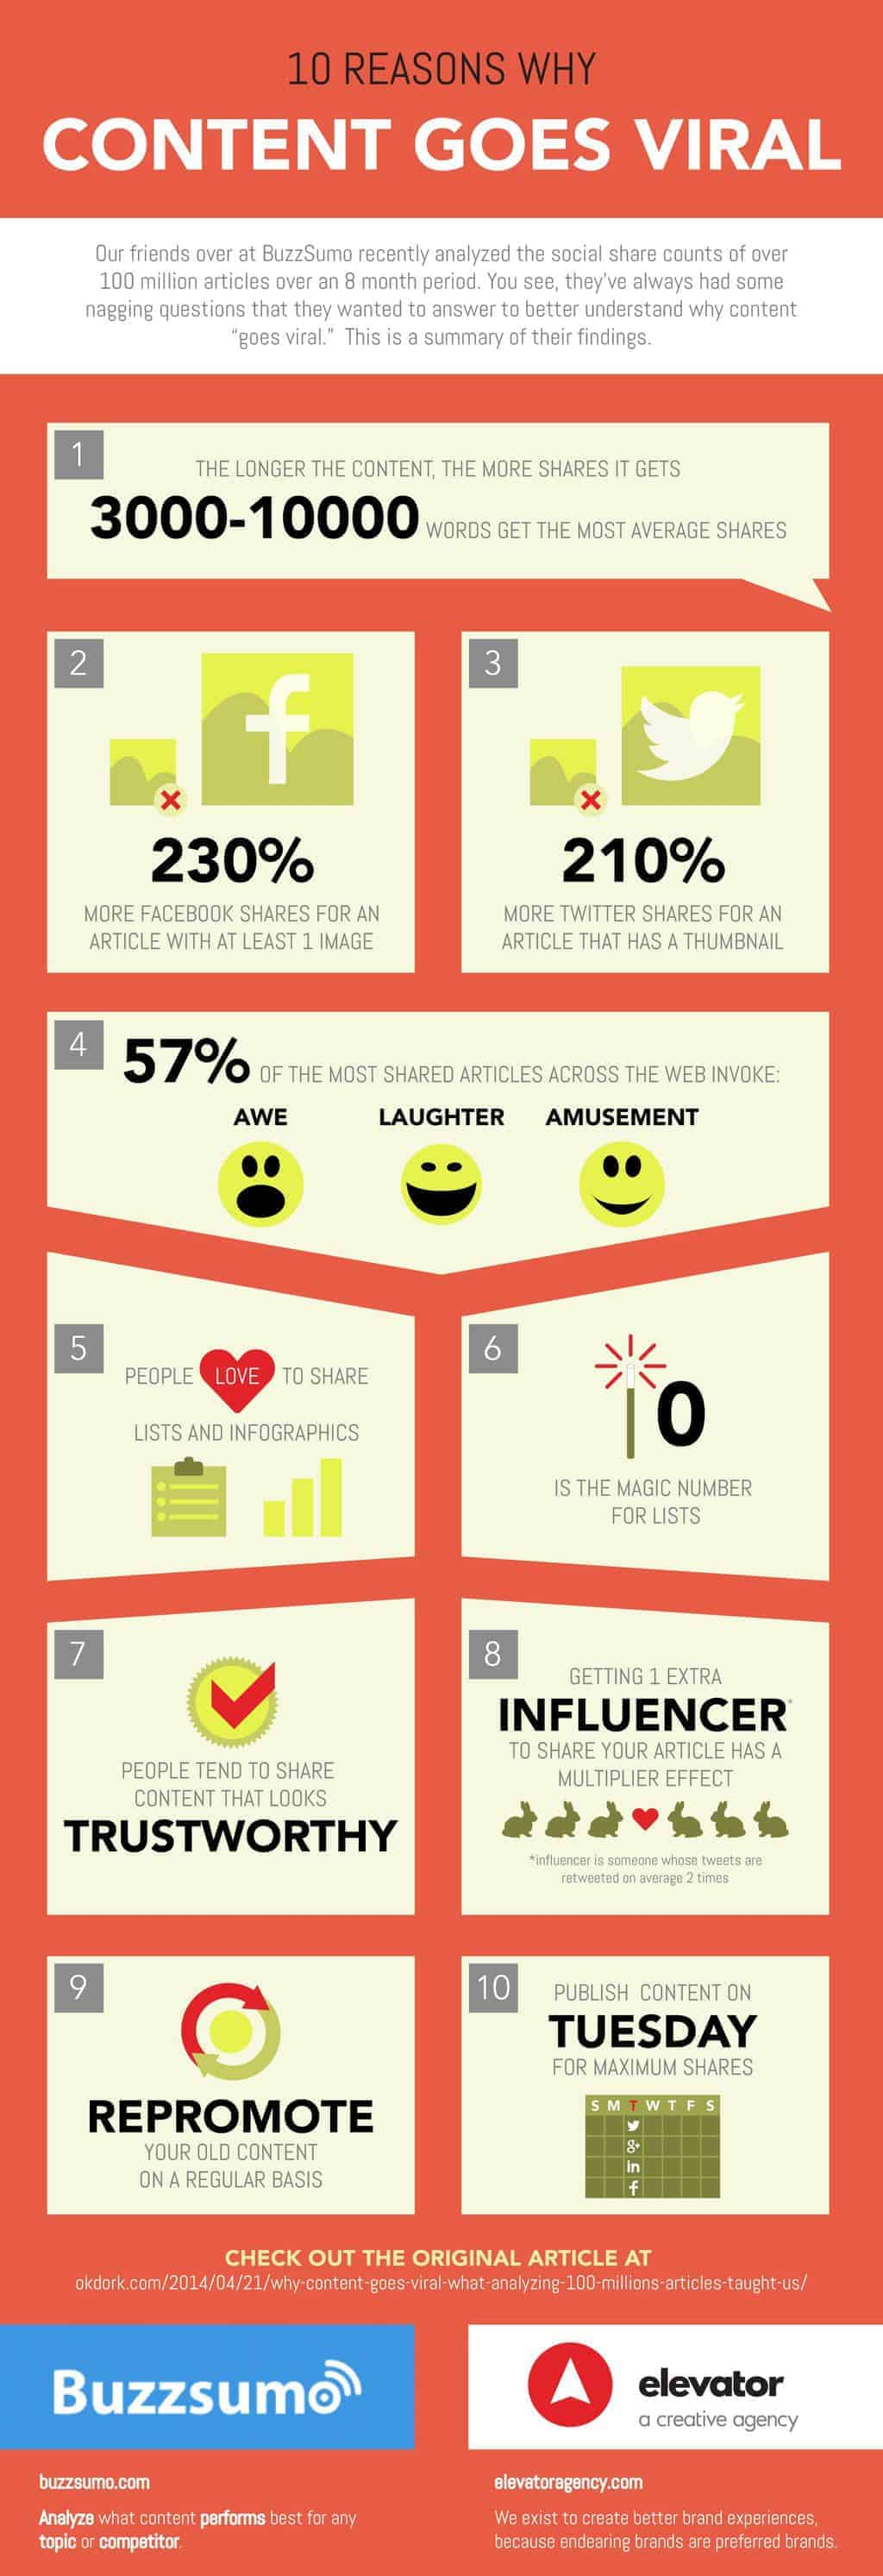 Infographic detailing why some content goes viral